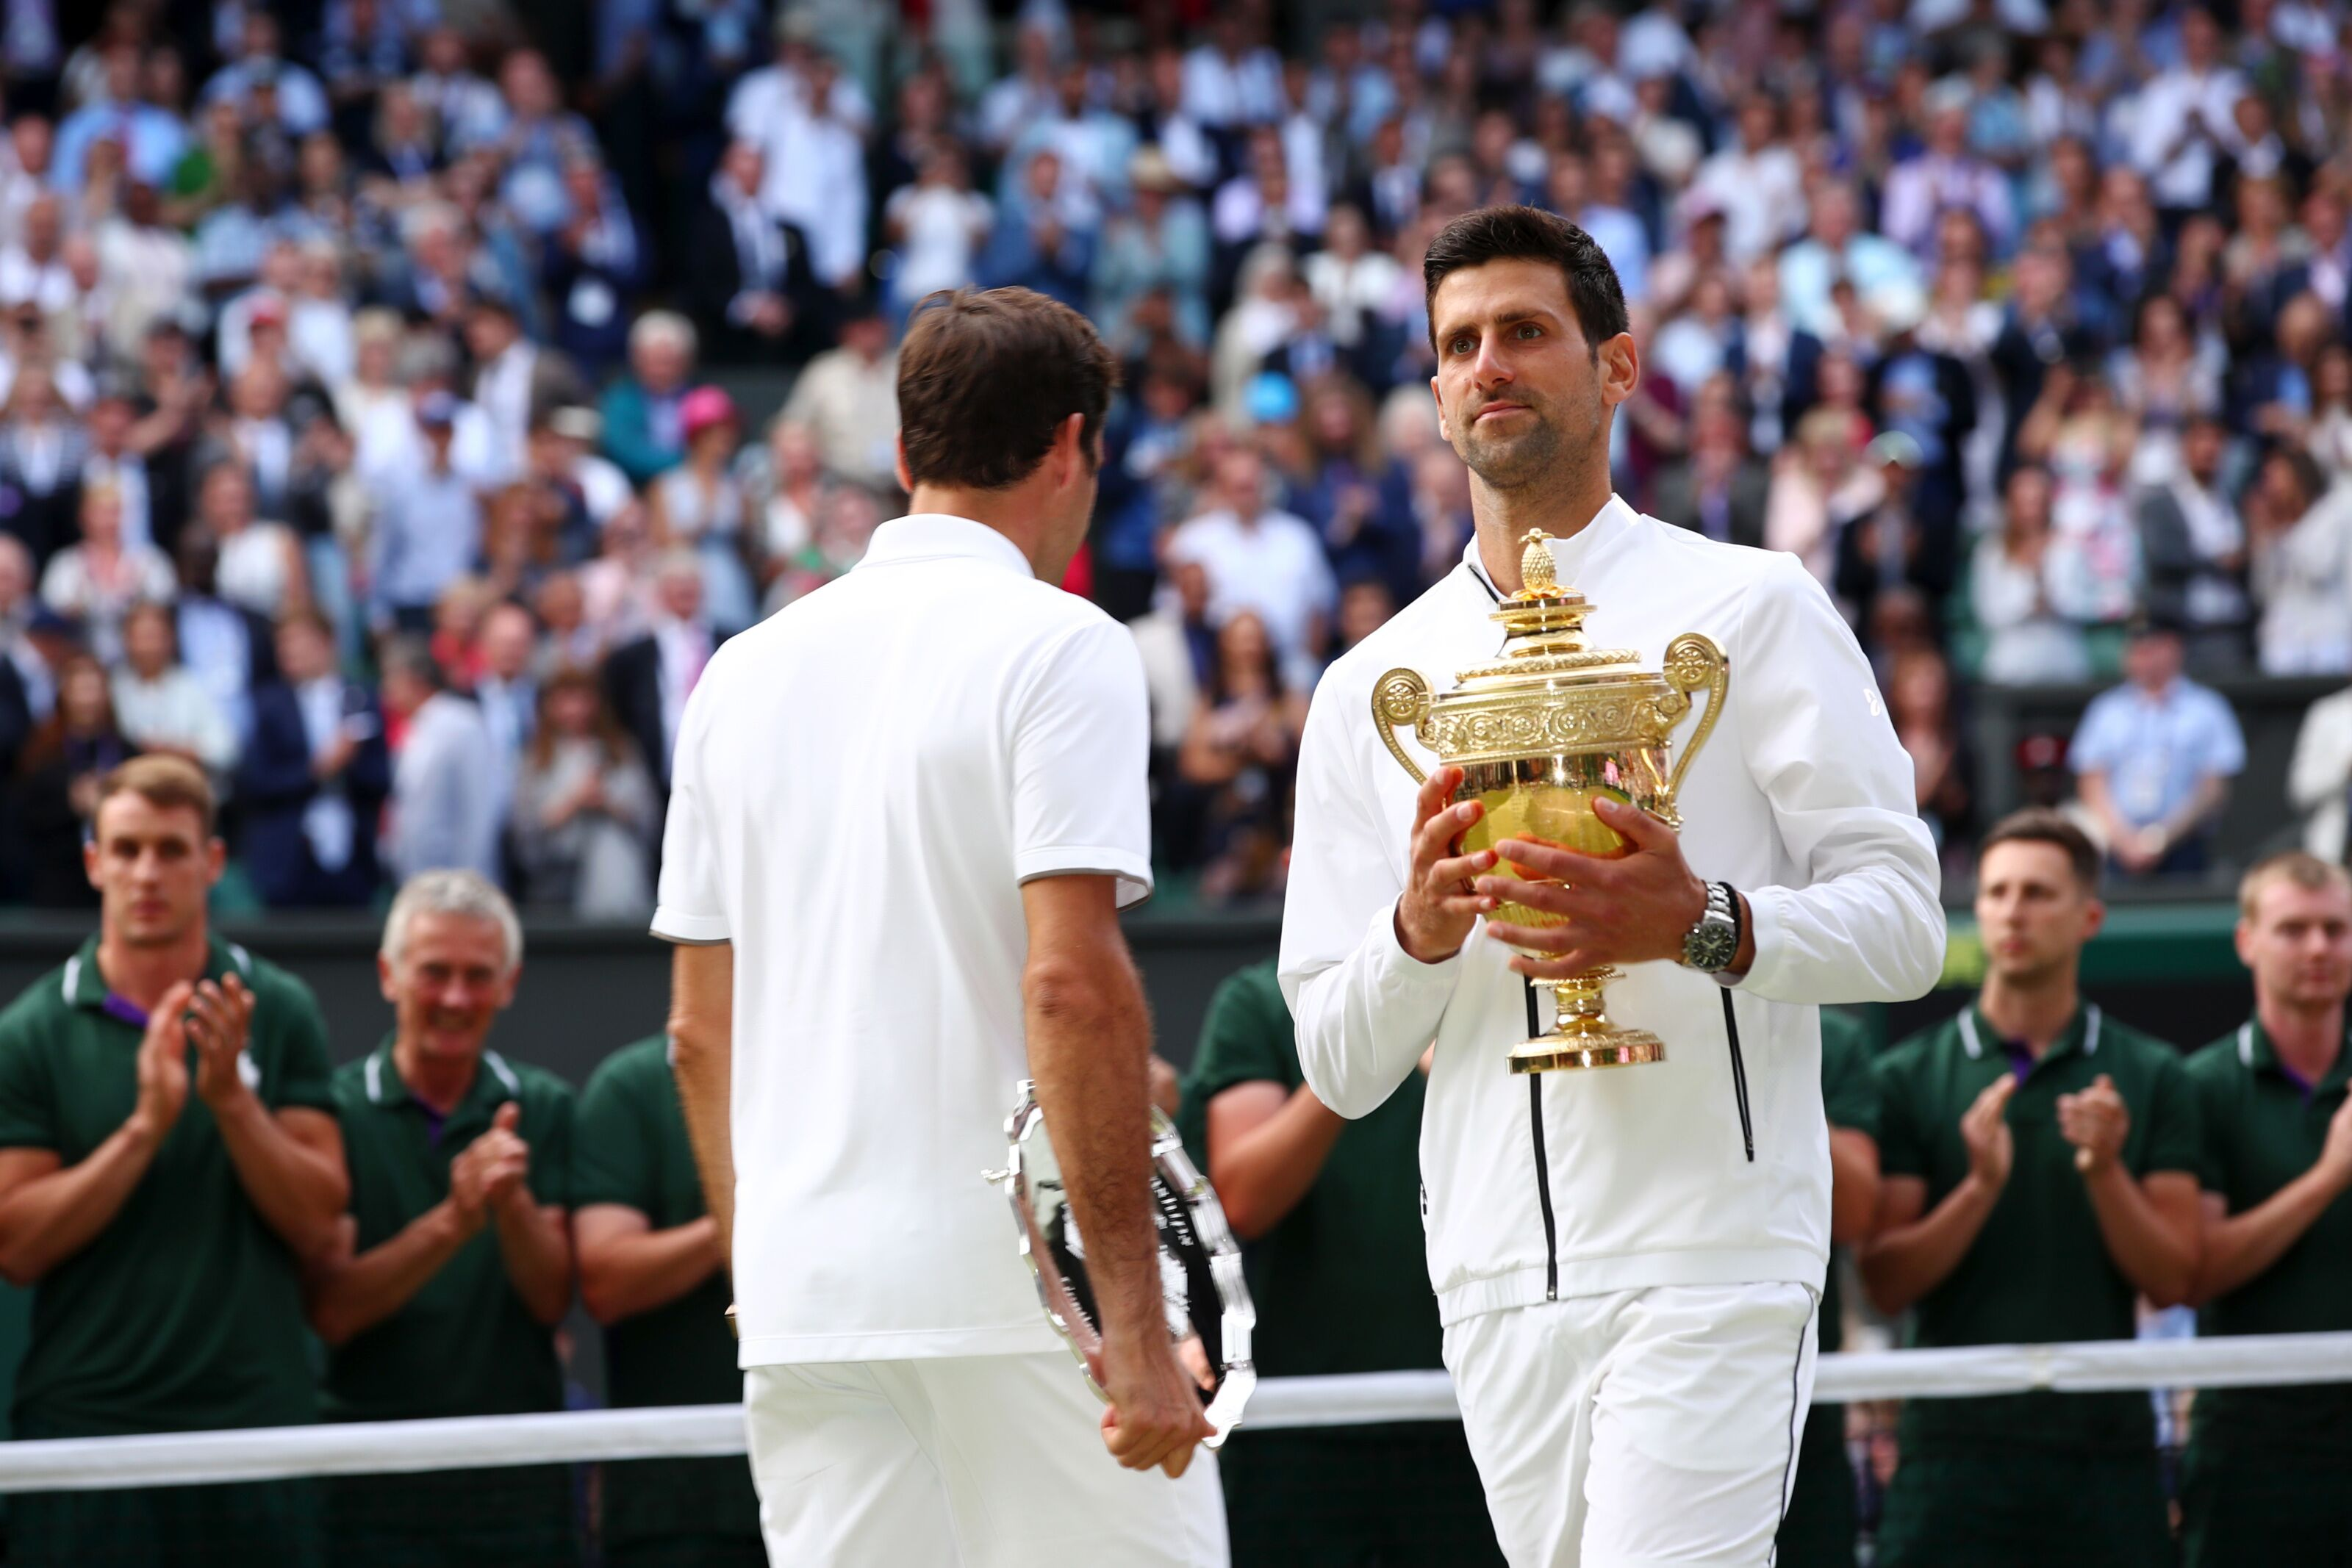 Novak Djokovic has Roger Federer's major record firmly in his sights